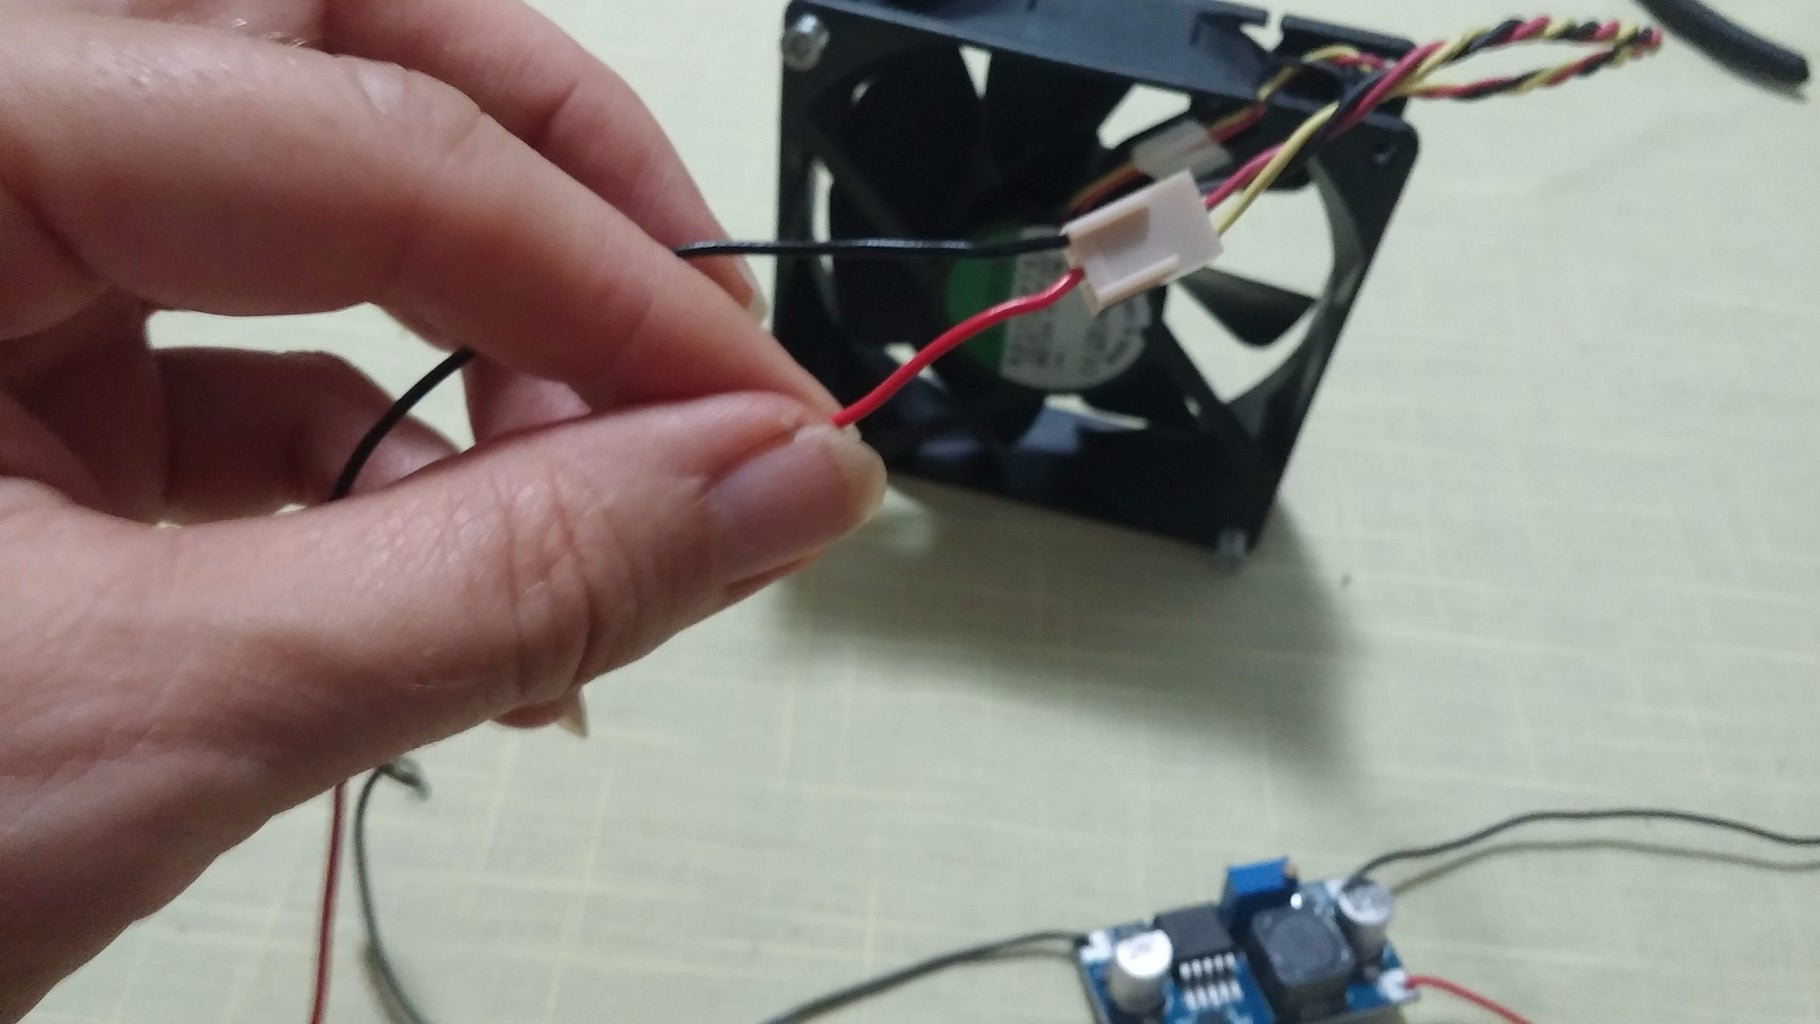 Attach Fan to Output Wires